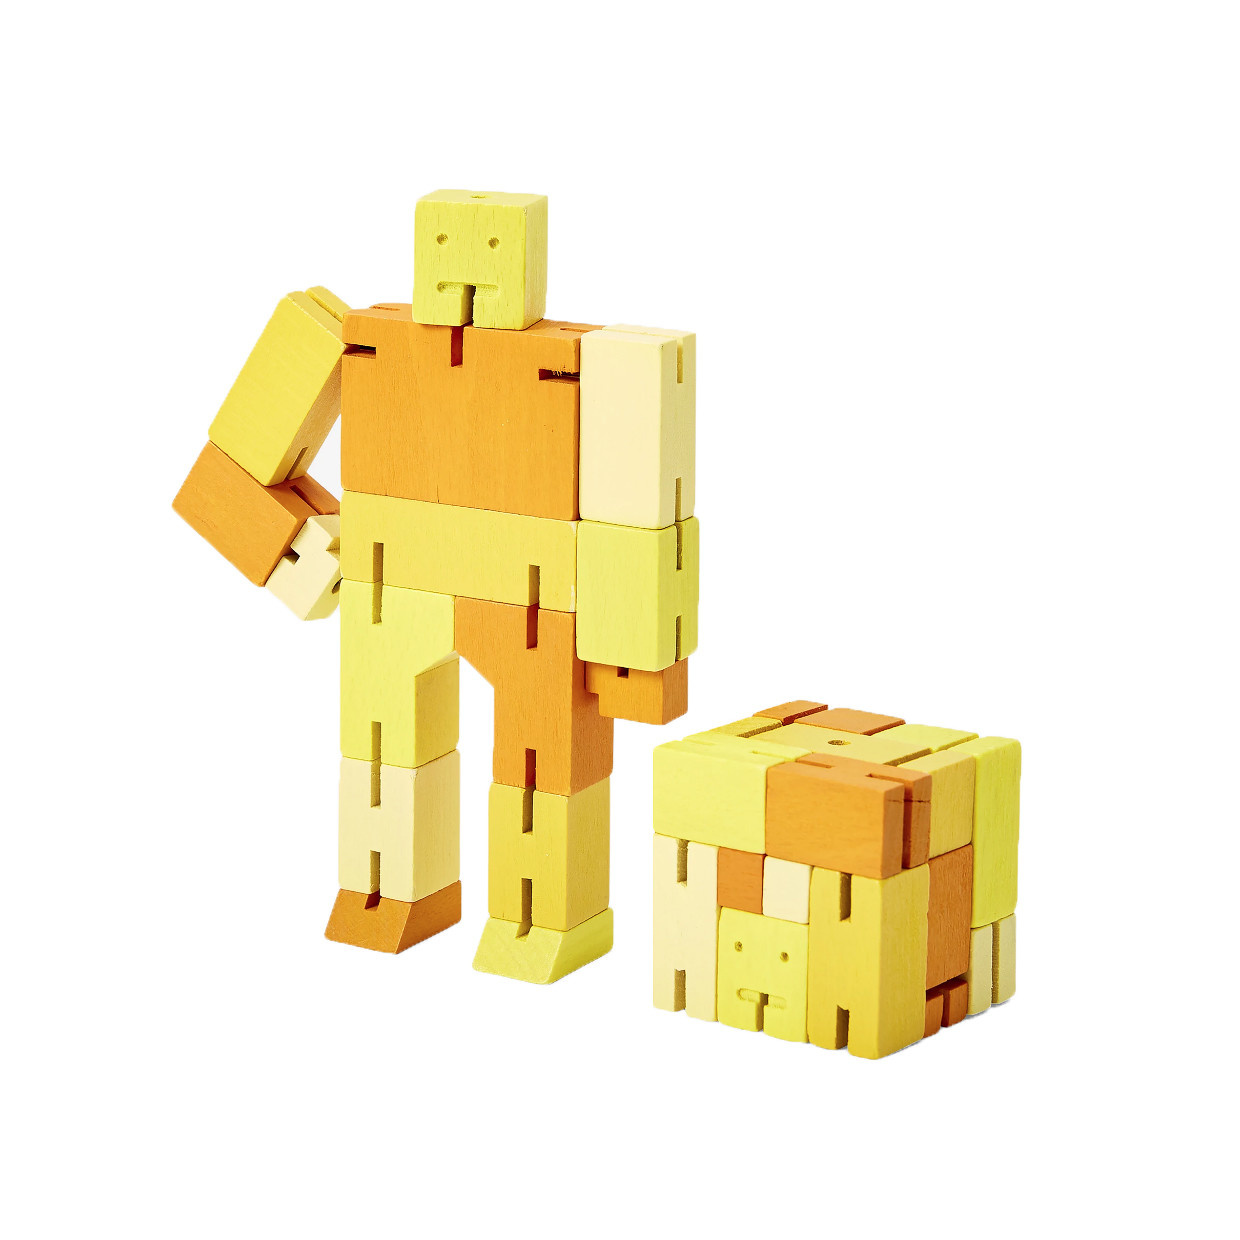 Cubebot Capsule Small - Yellow Multi